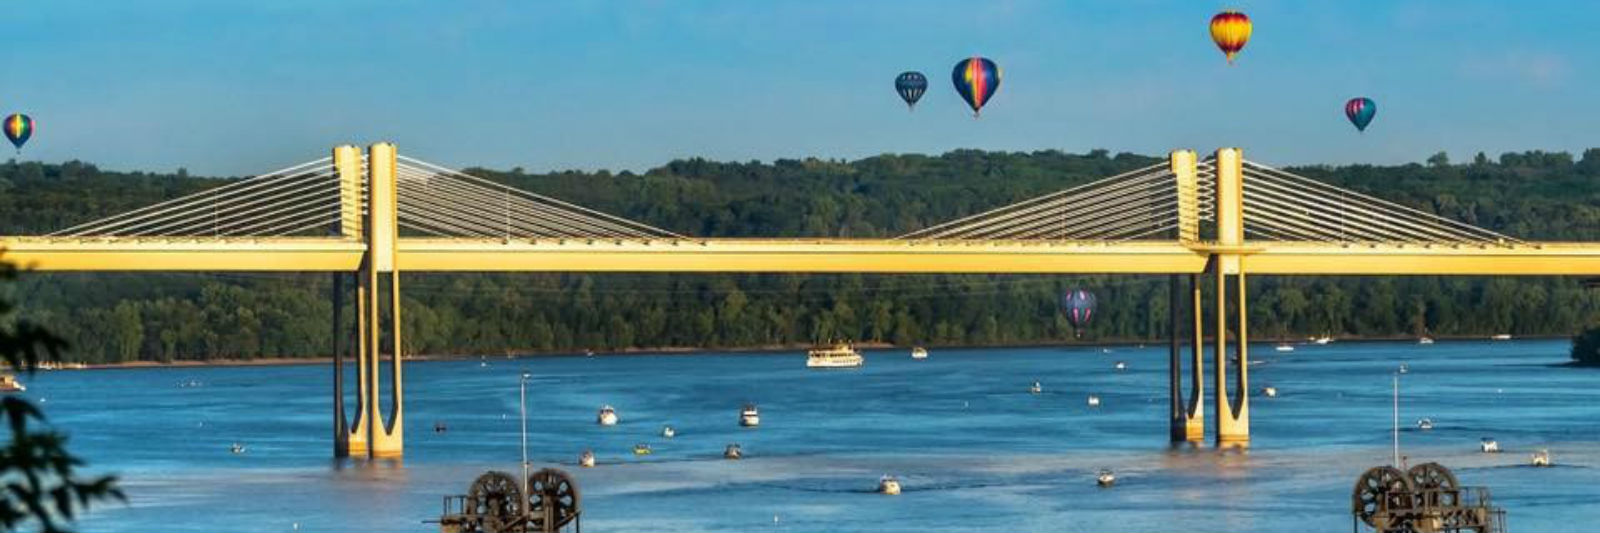 bridge-balloons.jpg